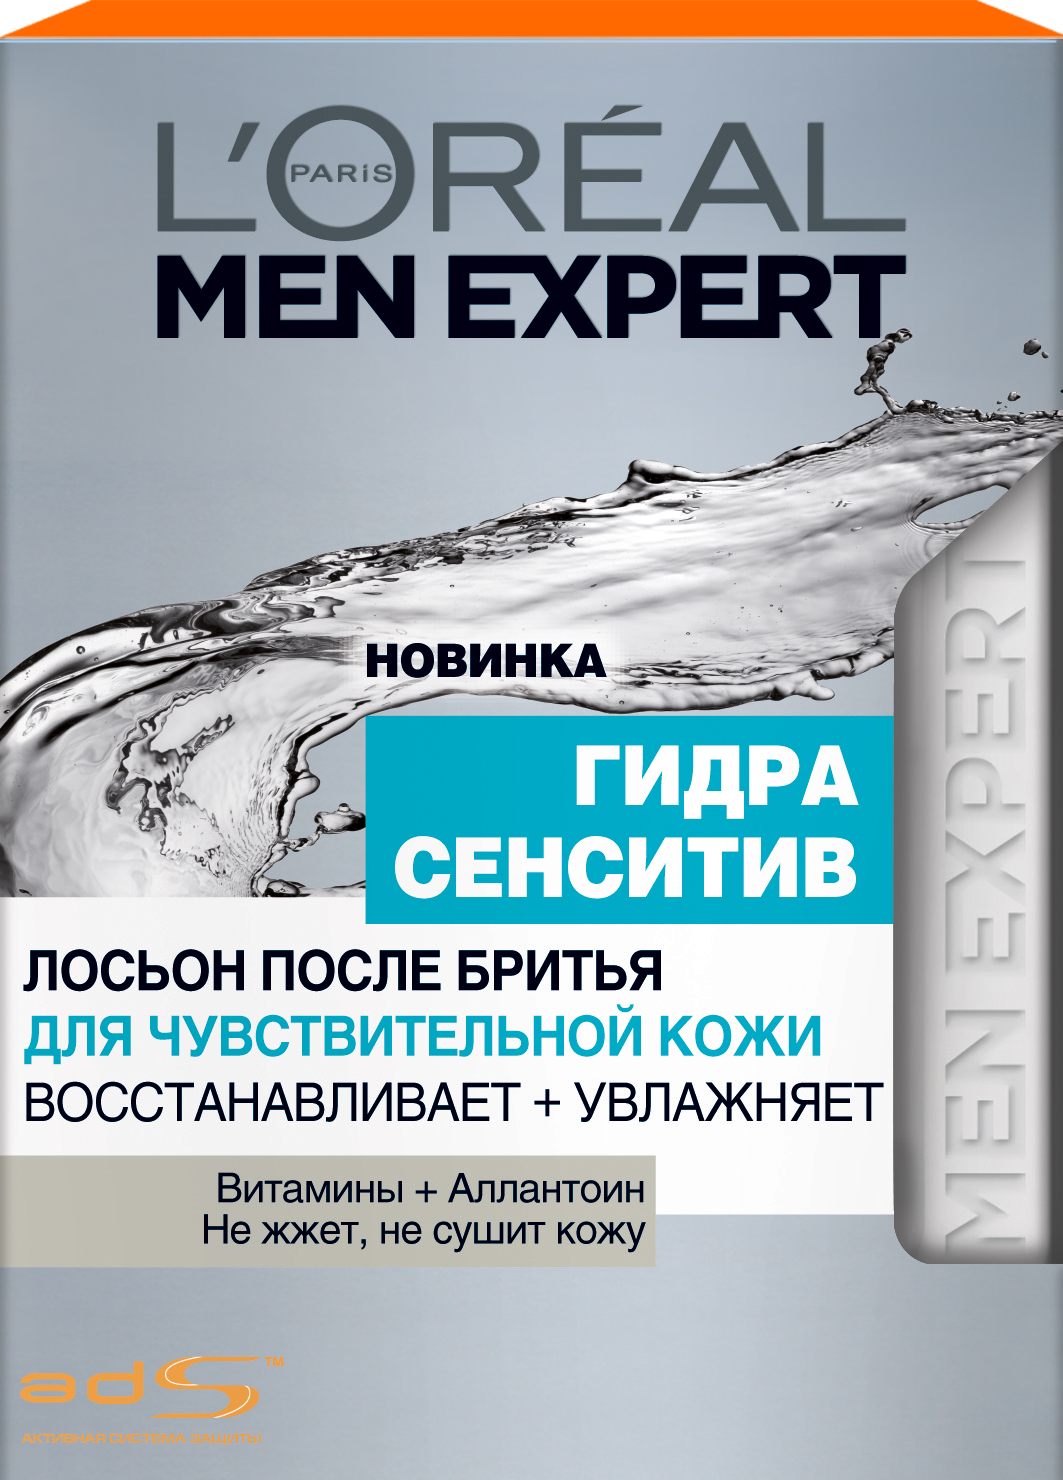 Лосьон после бритья L'Oreal Men Expert Hydra Sensitive, 100 мл